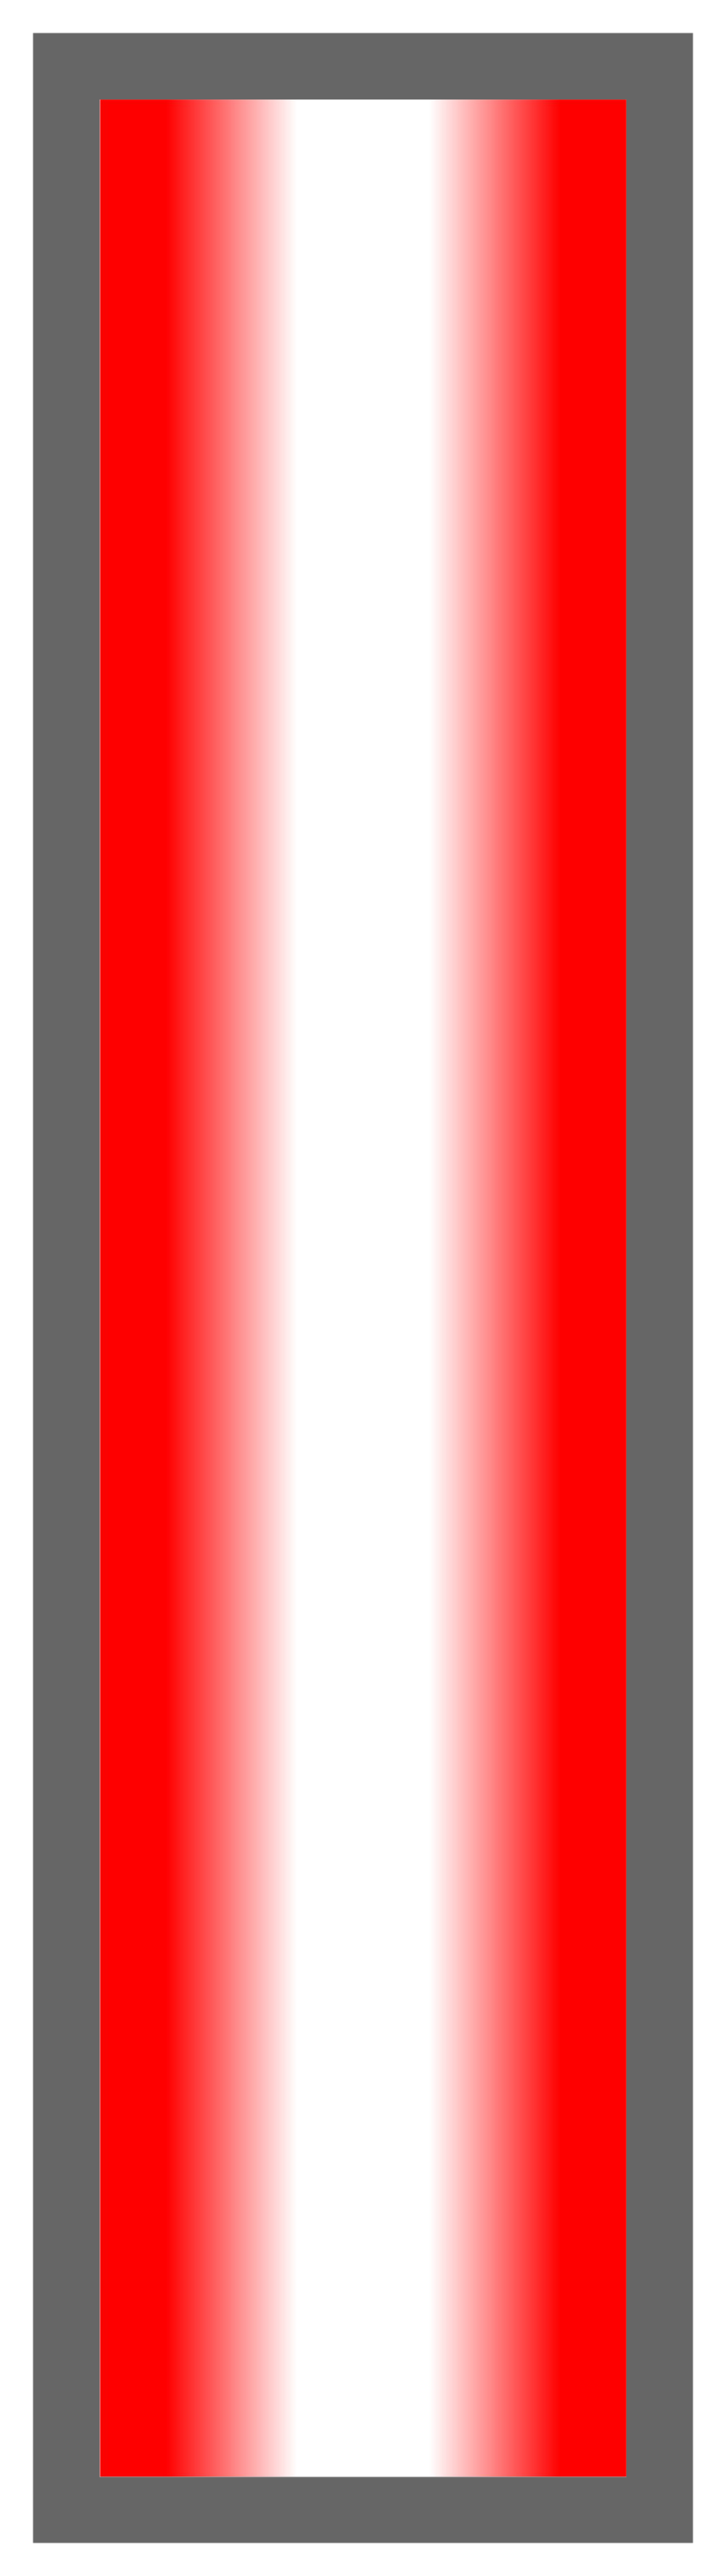 Red-White-Red Ombre Stripe